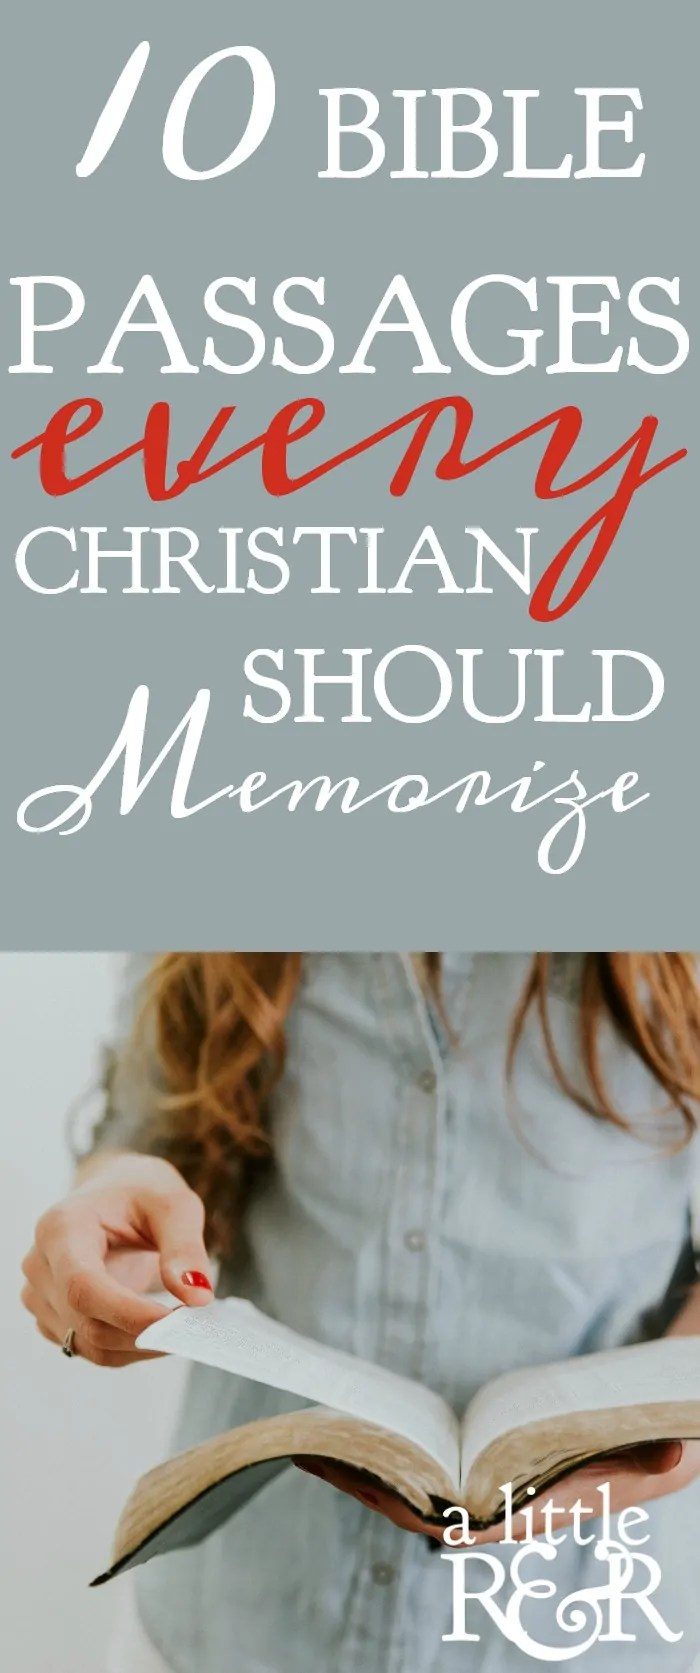 Memorizing scripture seems daunting for many Christians, which is why it is such a neglected Christian discipline. There are 10 passages of Scripture every Christian should memorize for a successful Christian life.